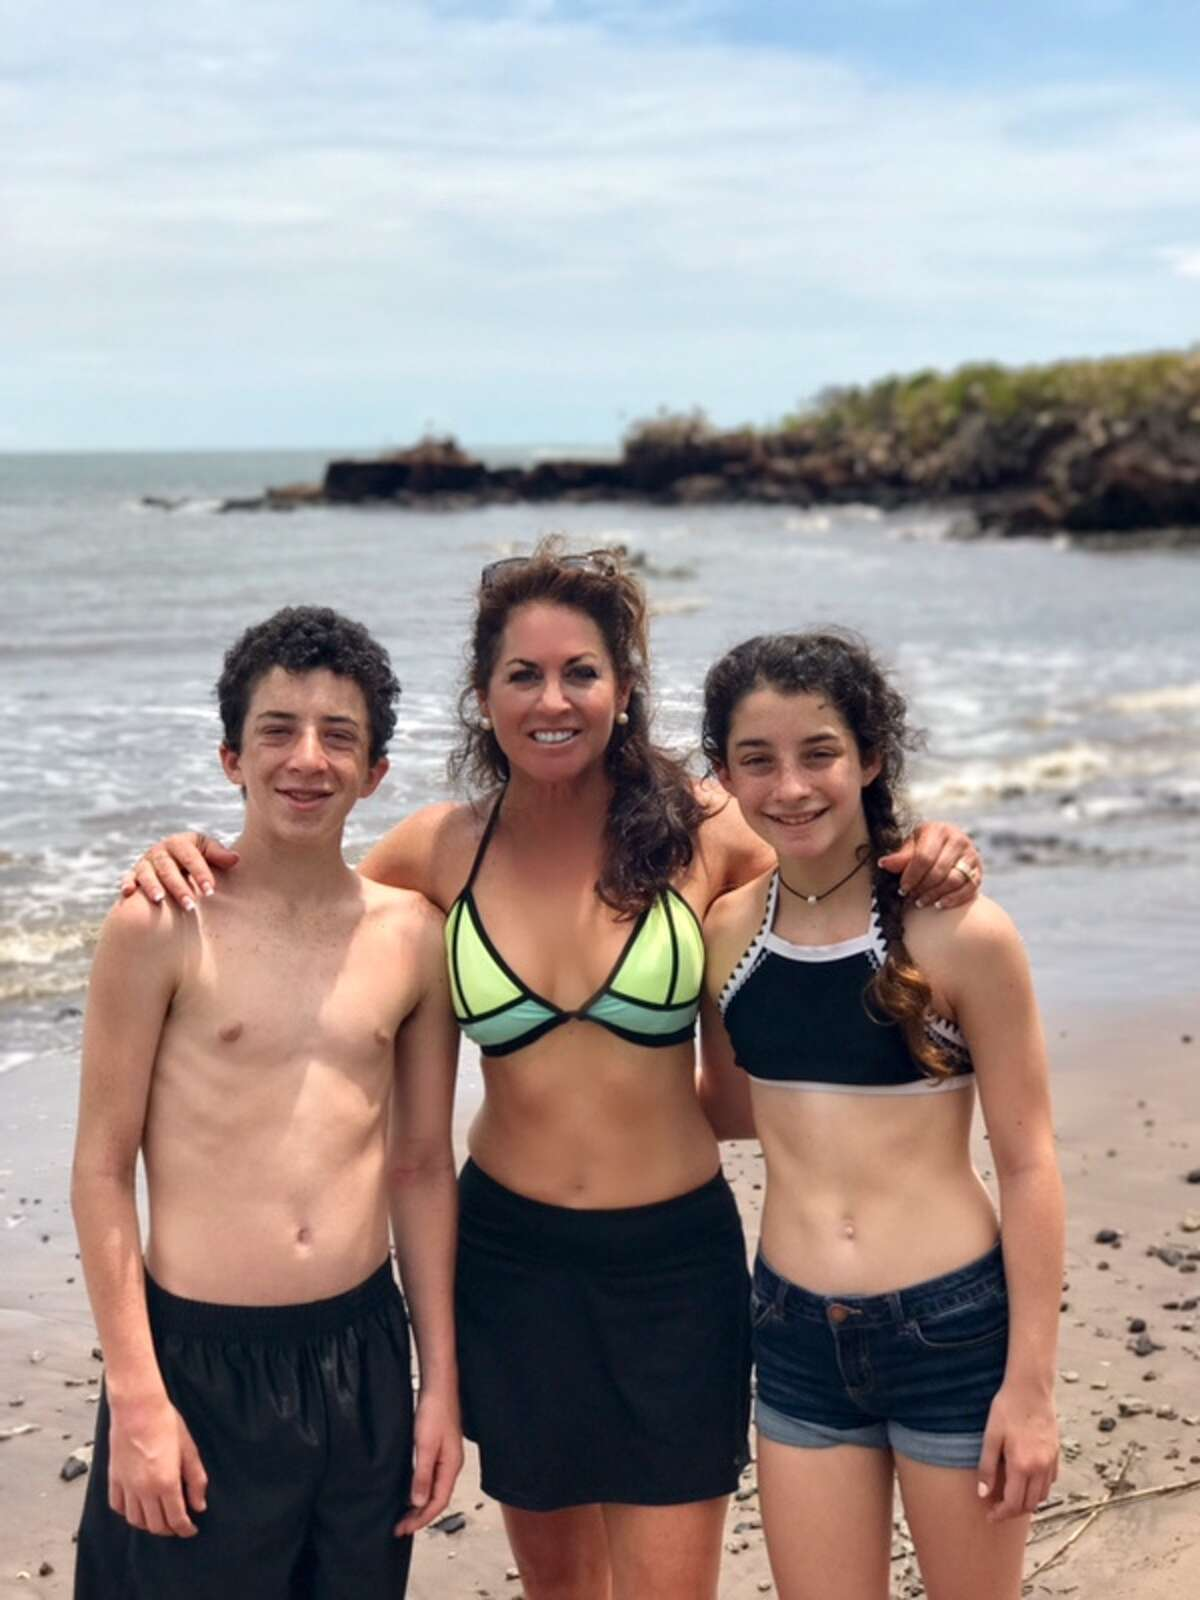 KSAT anchorwoman Ursula Pari stripped down to a bikini with her two children, Jackson and Georgia, during a June holiday in Jacksonville, Florida, where they hiked to their favorite secluded beach.